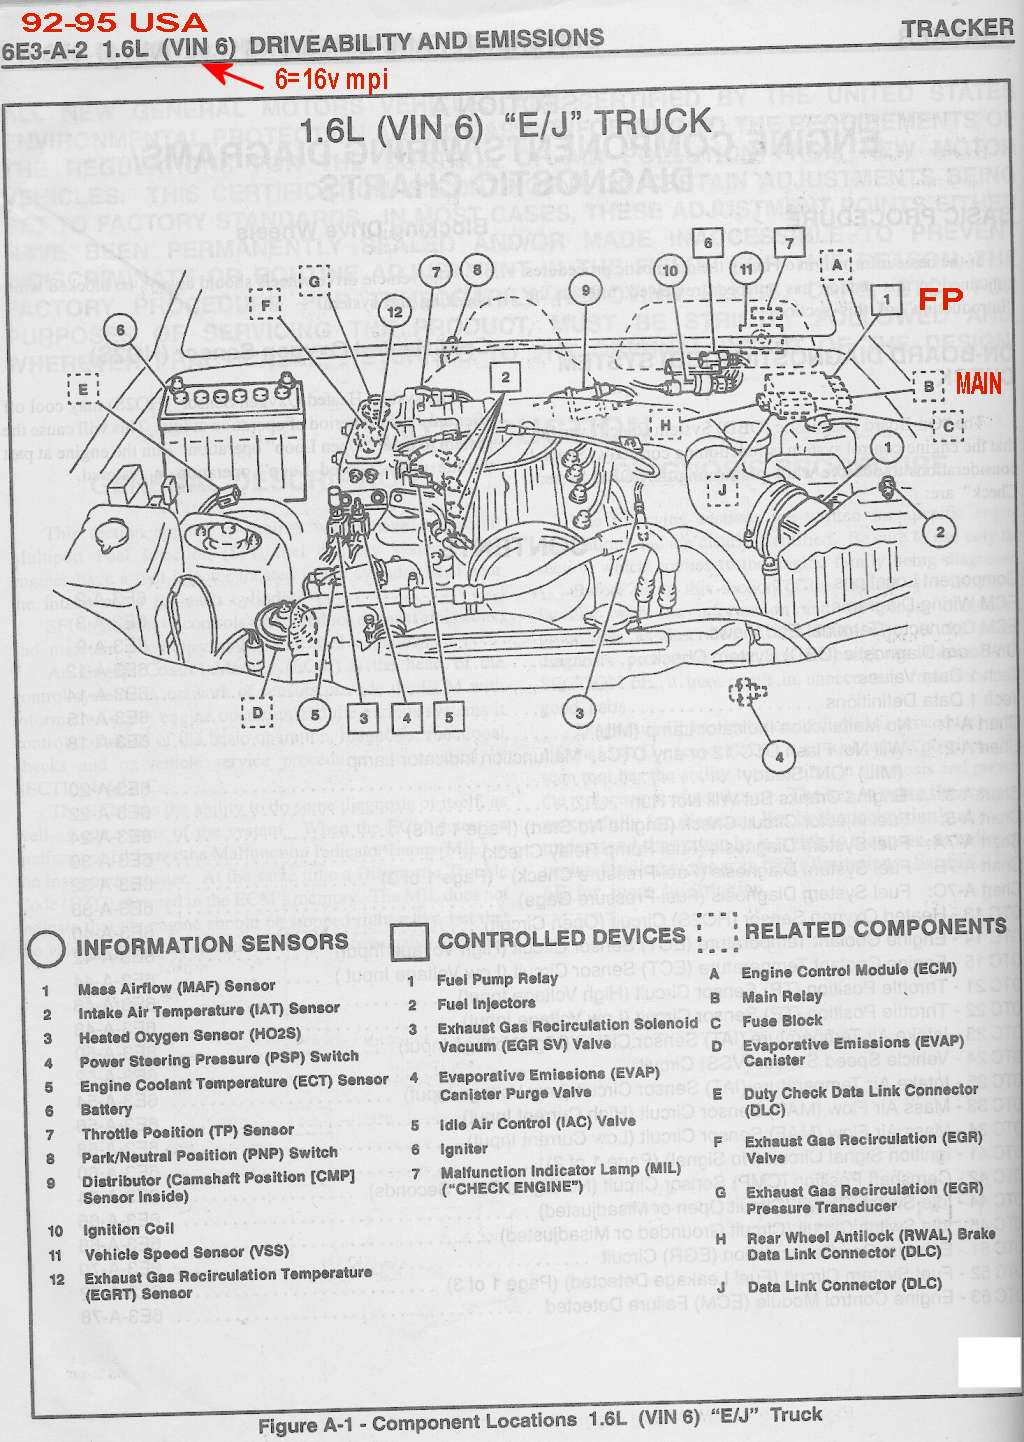 1995 geo tracker 16v fuel pump wiring diagram [wrg-5461] 1995 geo tracker wiring diagram 1995 geo tracker wiring